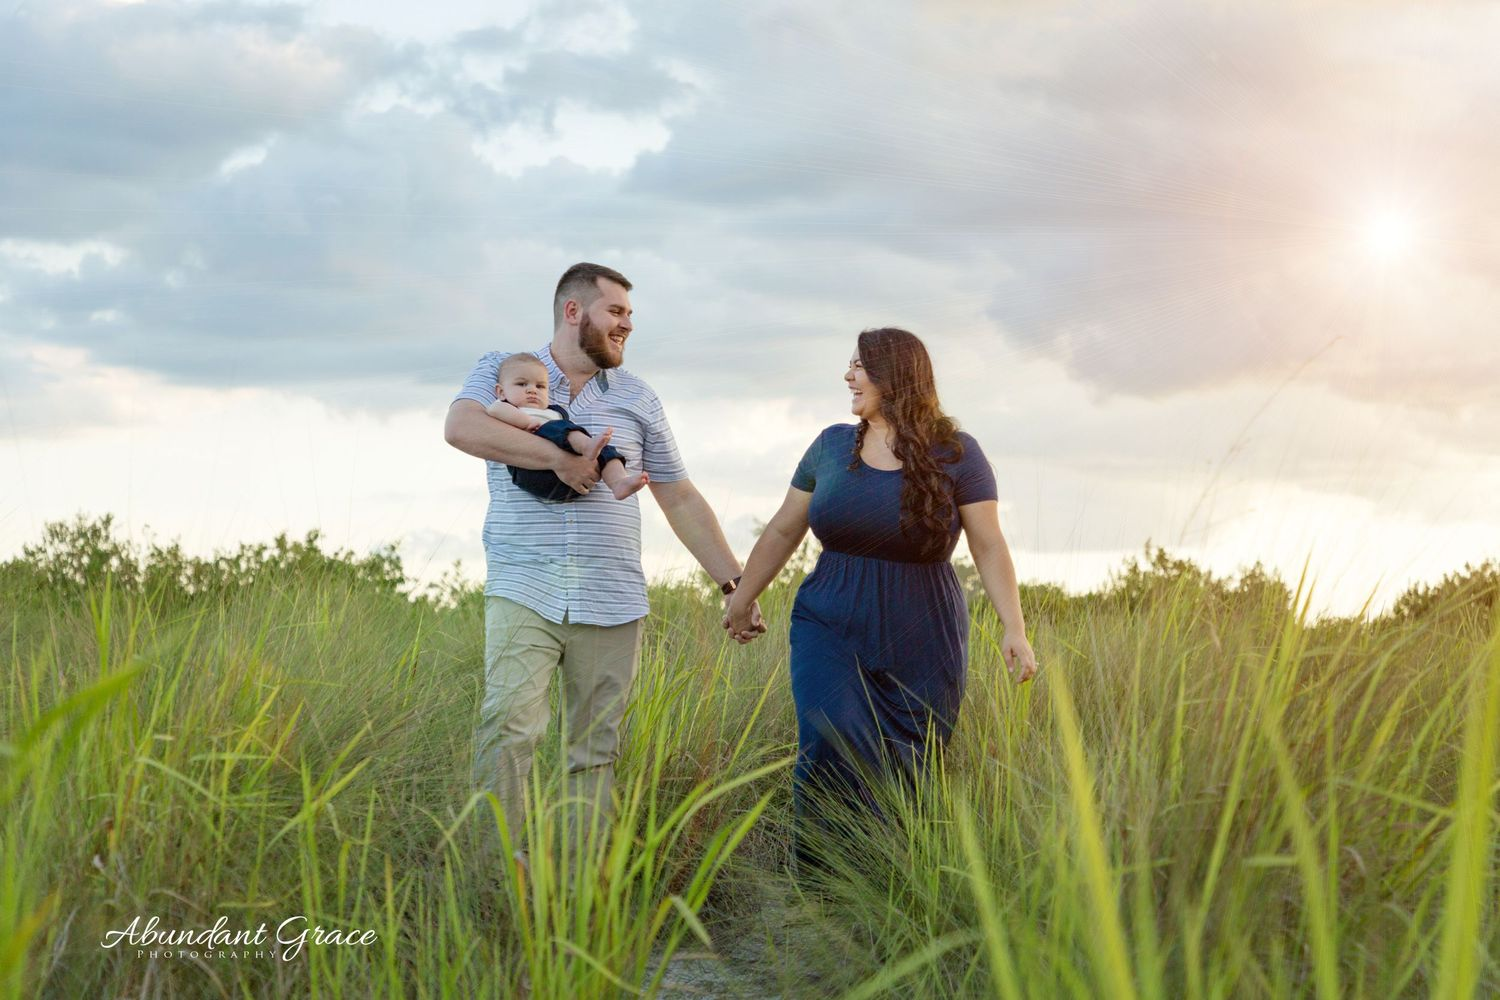 abundant grace photography, affordable family photographer, family beach photography